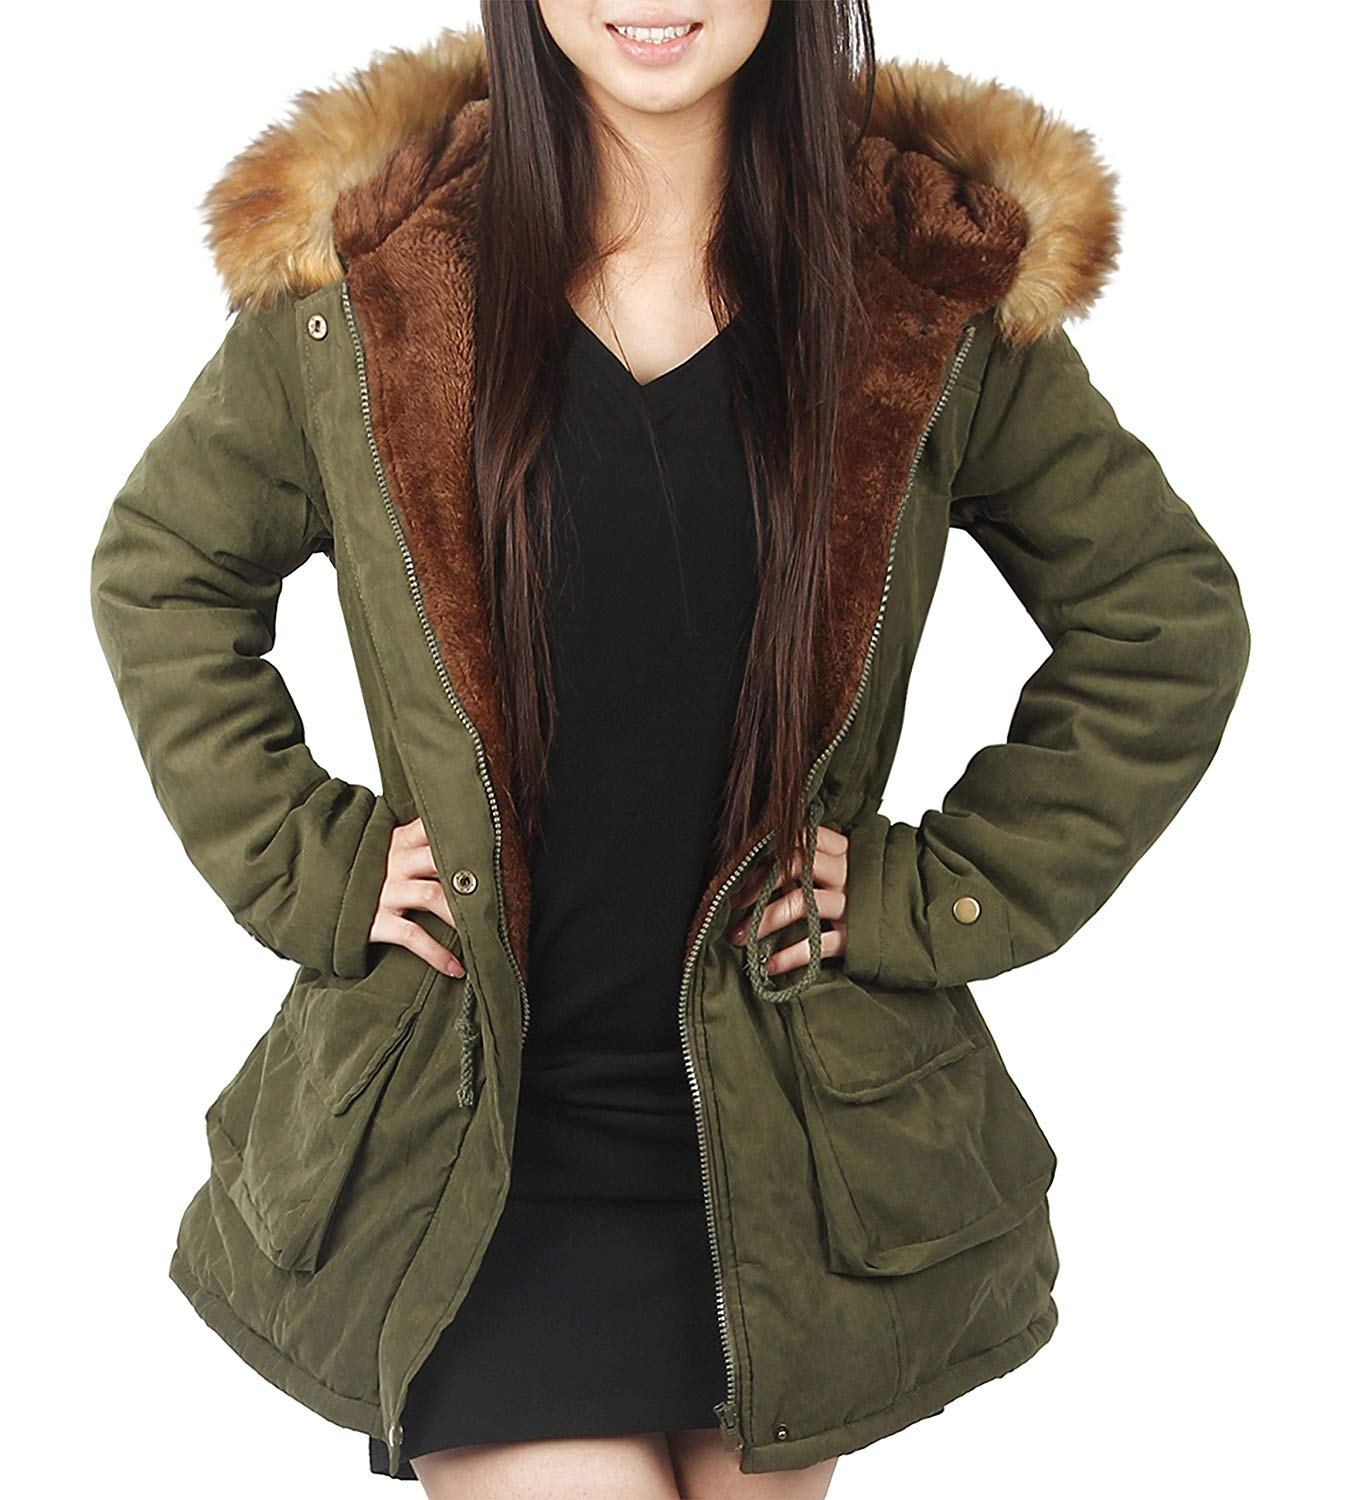 Hooded Parkas 4how womens parka jacket hooded winter coats faux fur outdoor coat at  amazon YEQCLIG